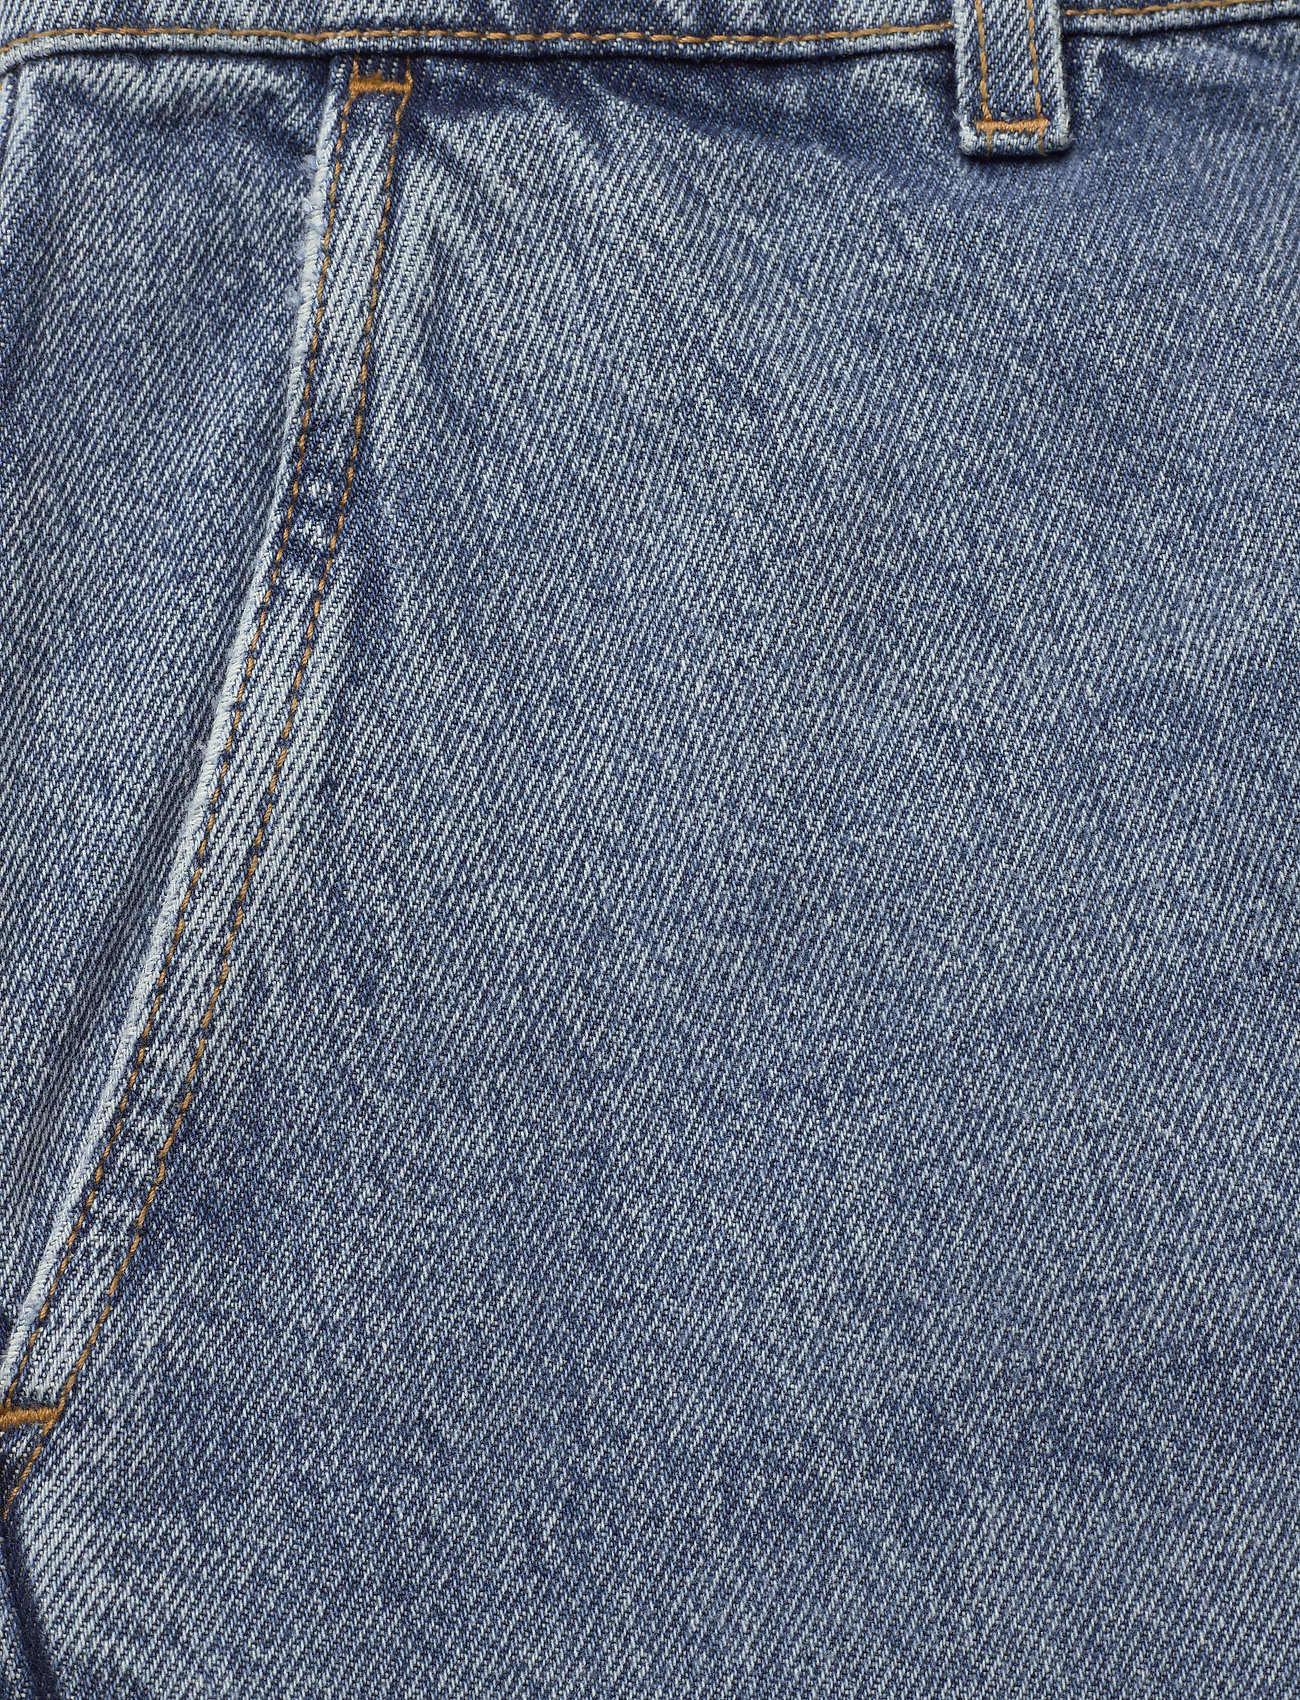 Mavis Denim (Blue) (1235 kr) - Arnie Says